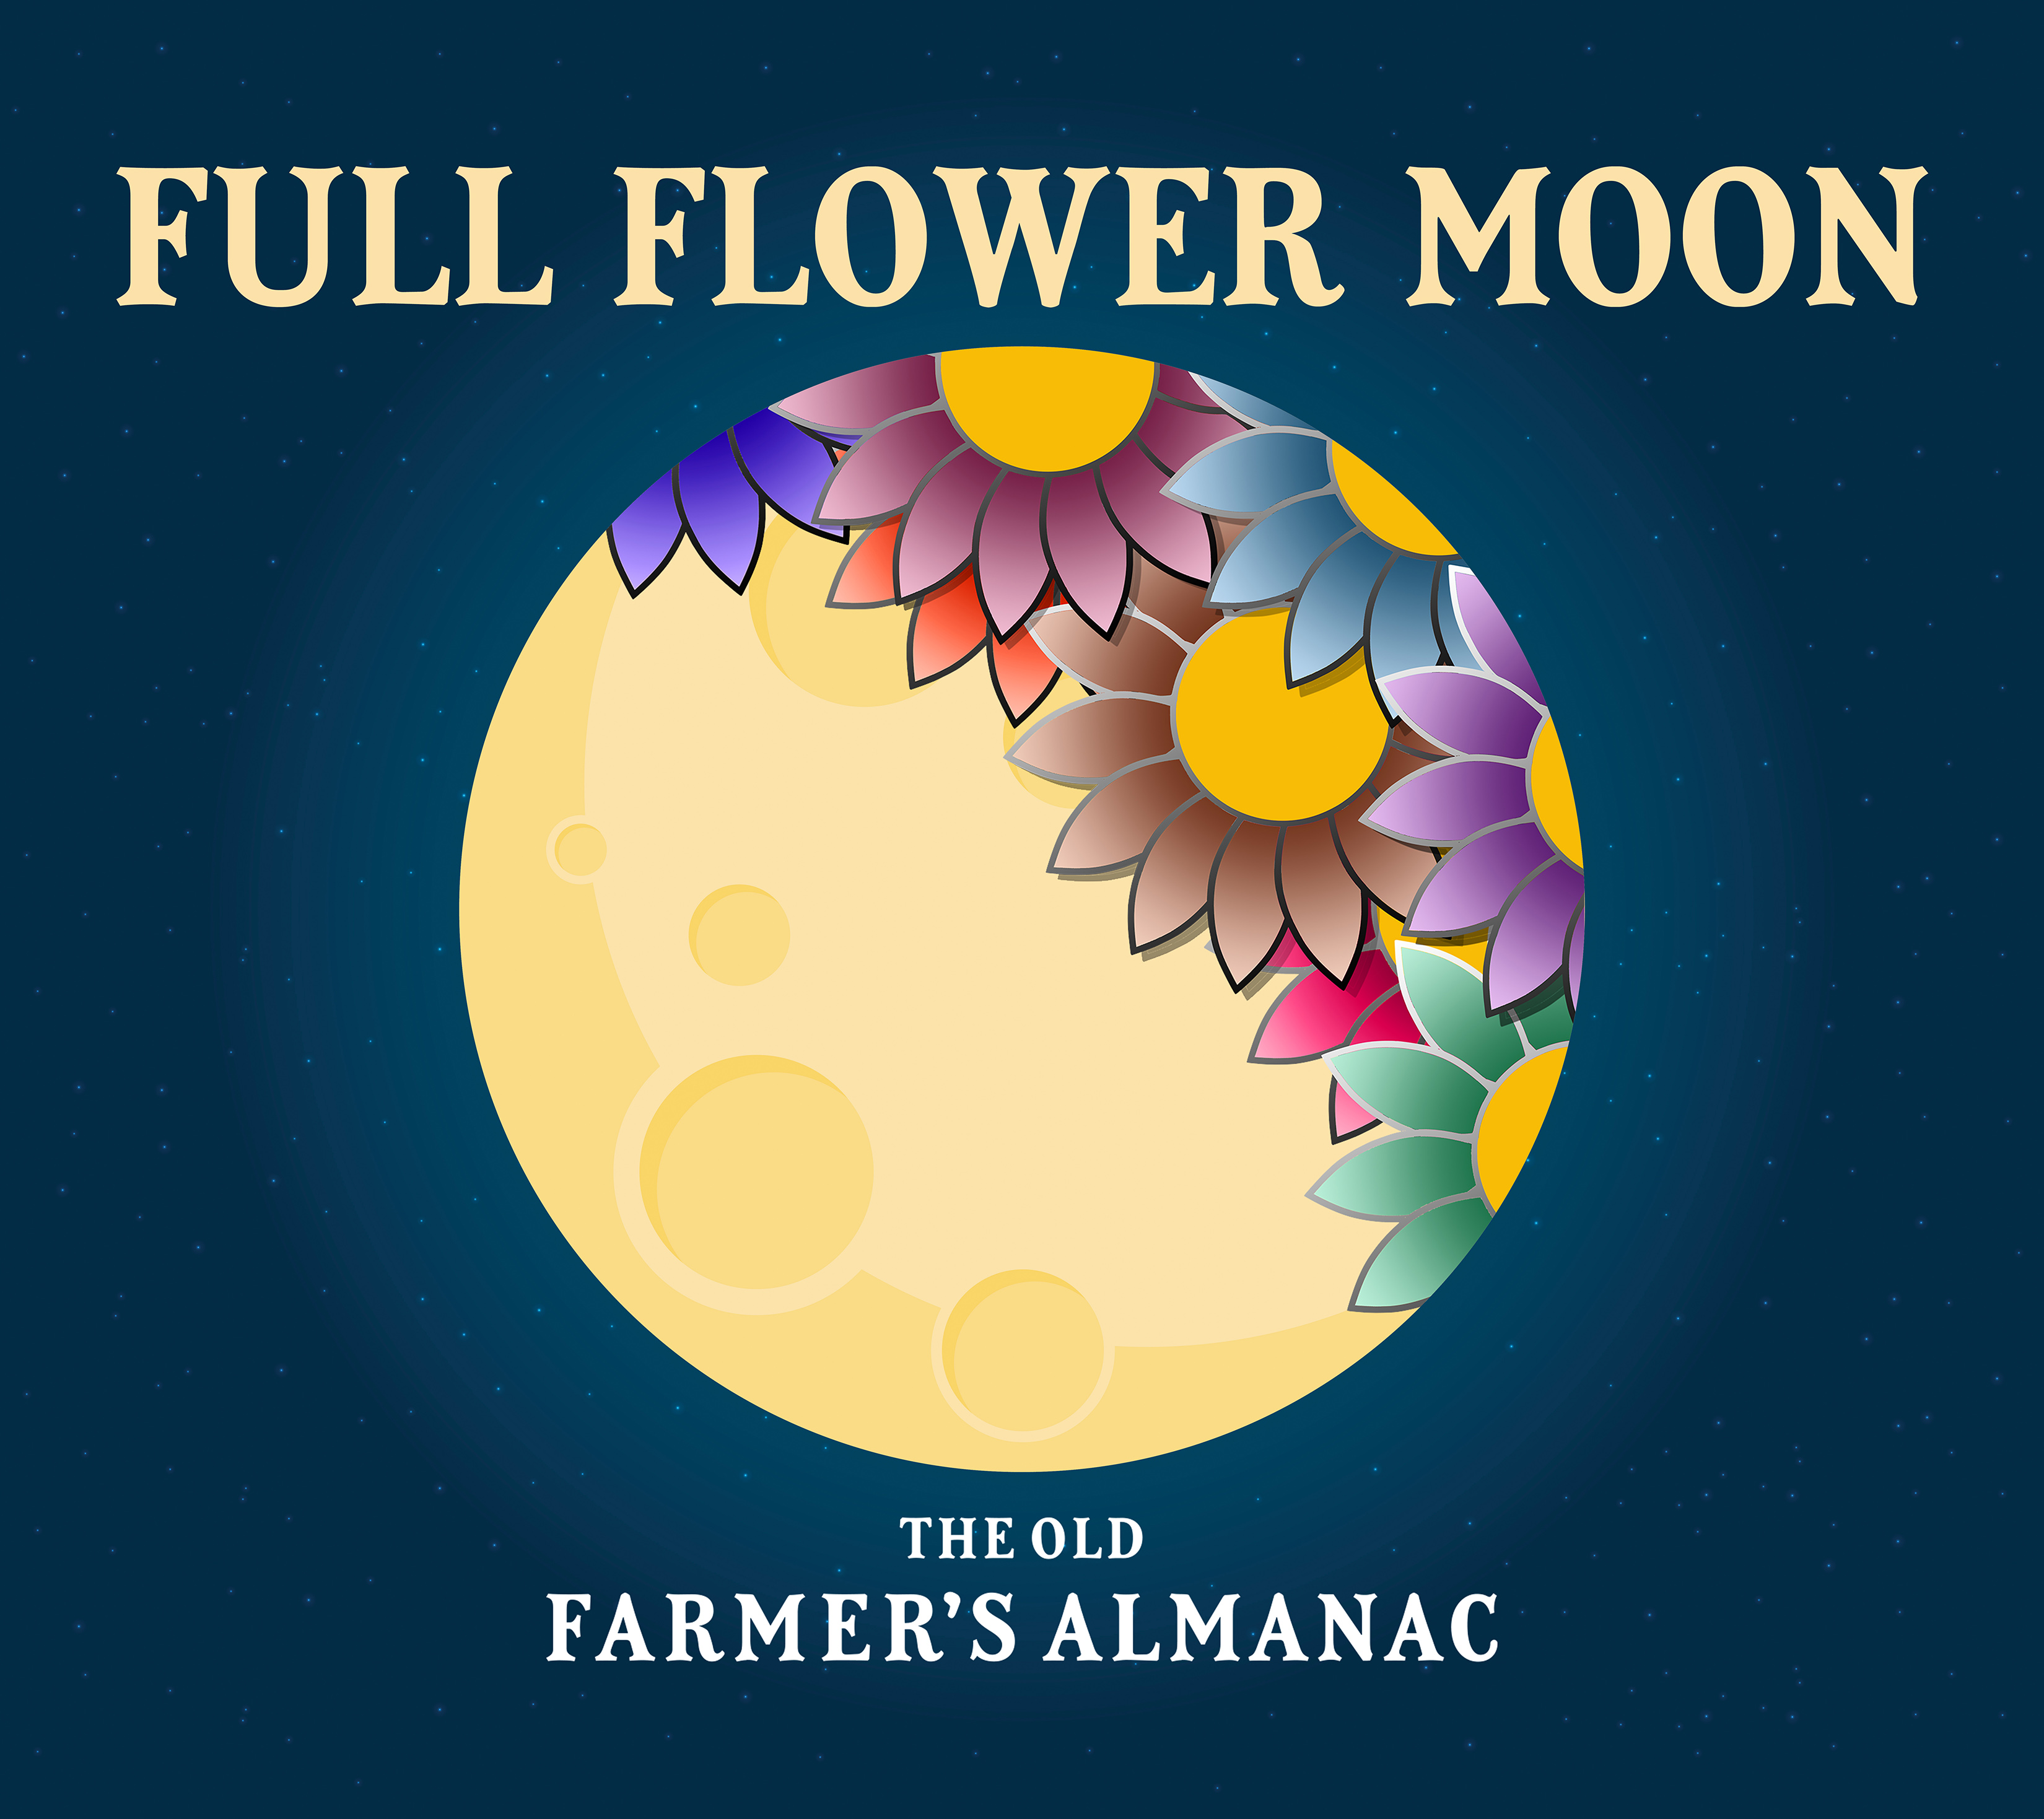 Moon Planting Calendar 2022.Full Moon In May 2021 Flower Moon Supermoon And Eclipse The Old Farmer S Almanac